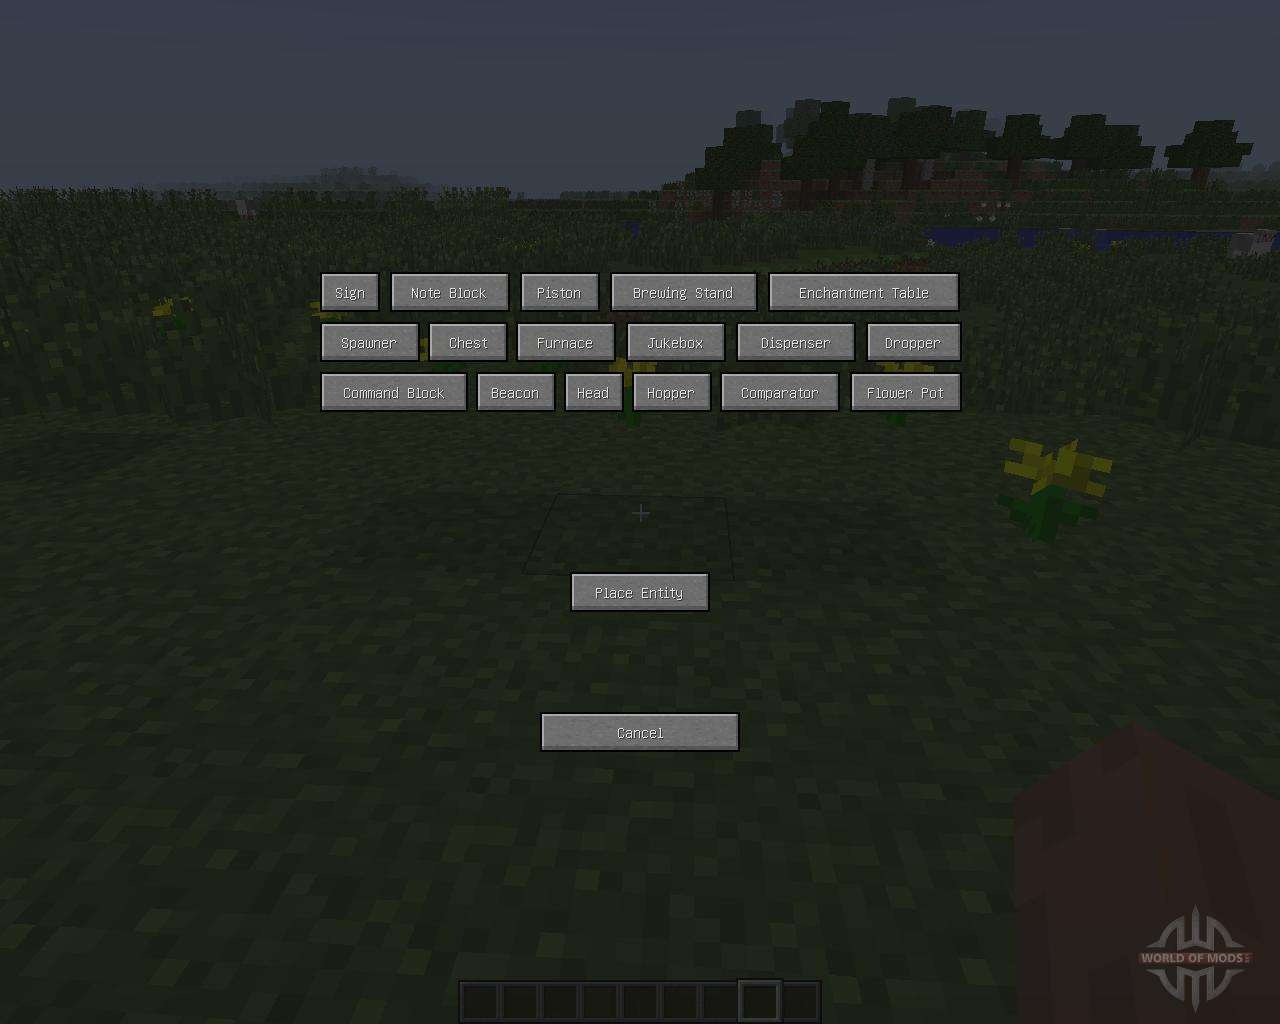 minecraft 1.7.10 beacon